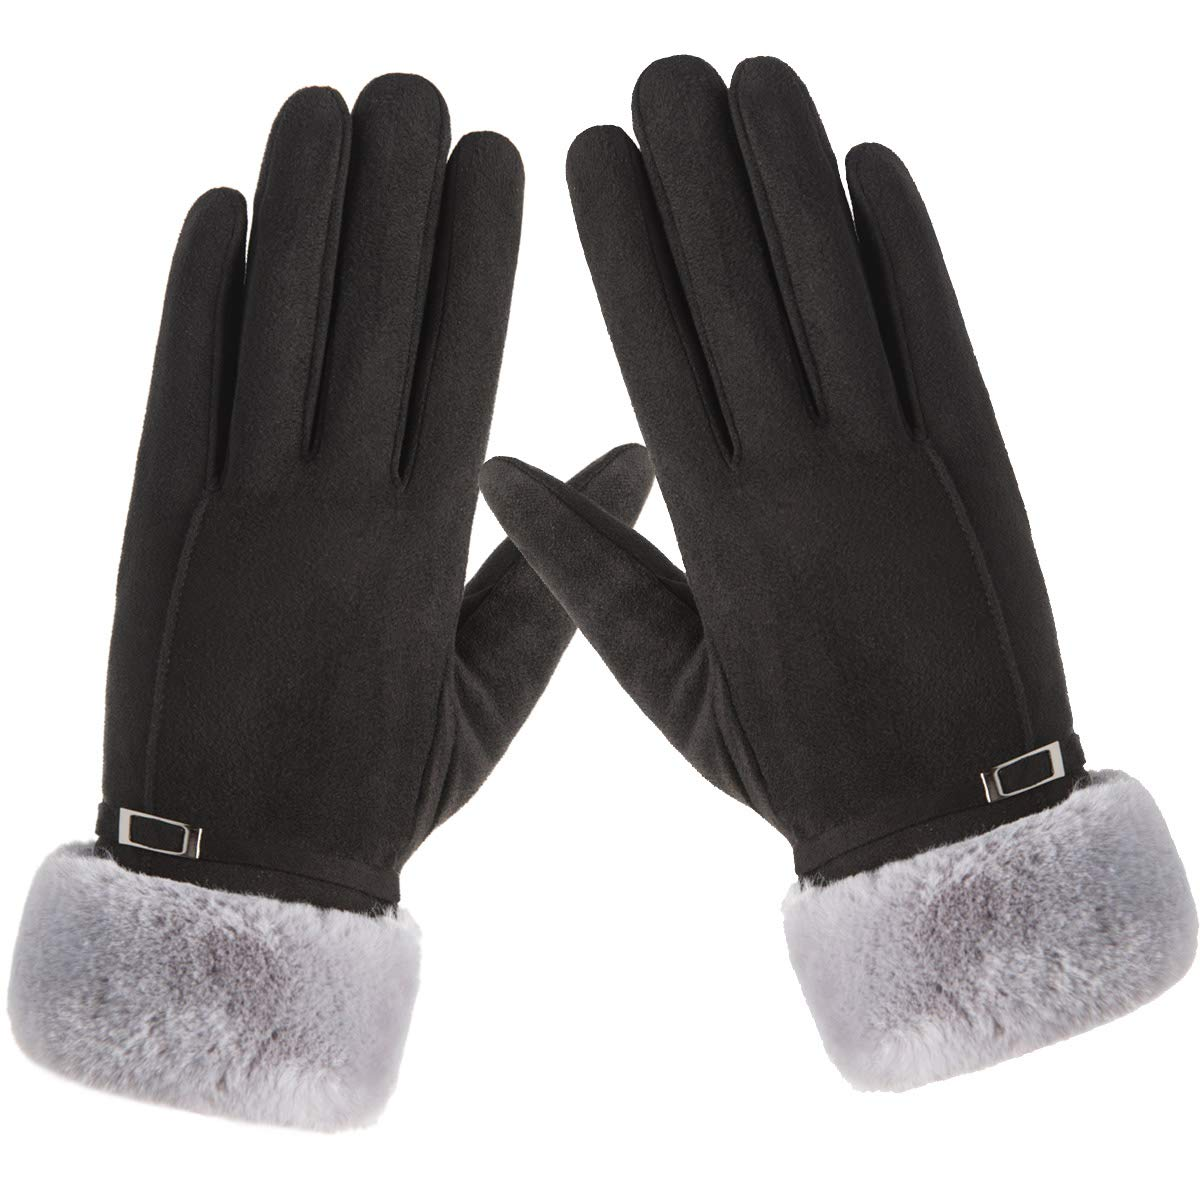 Vohoney Ladies Gloves Winter Gloves WomenTouch Screen Gloves Texting Gloves Cold Weather Thick Warm Gloves Outdoor Sports Driving Skiing Running Cycling Ladies Winter Gloves for Black 3